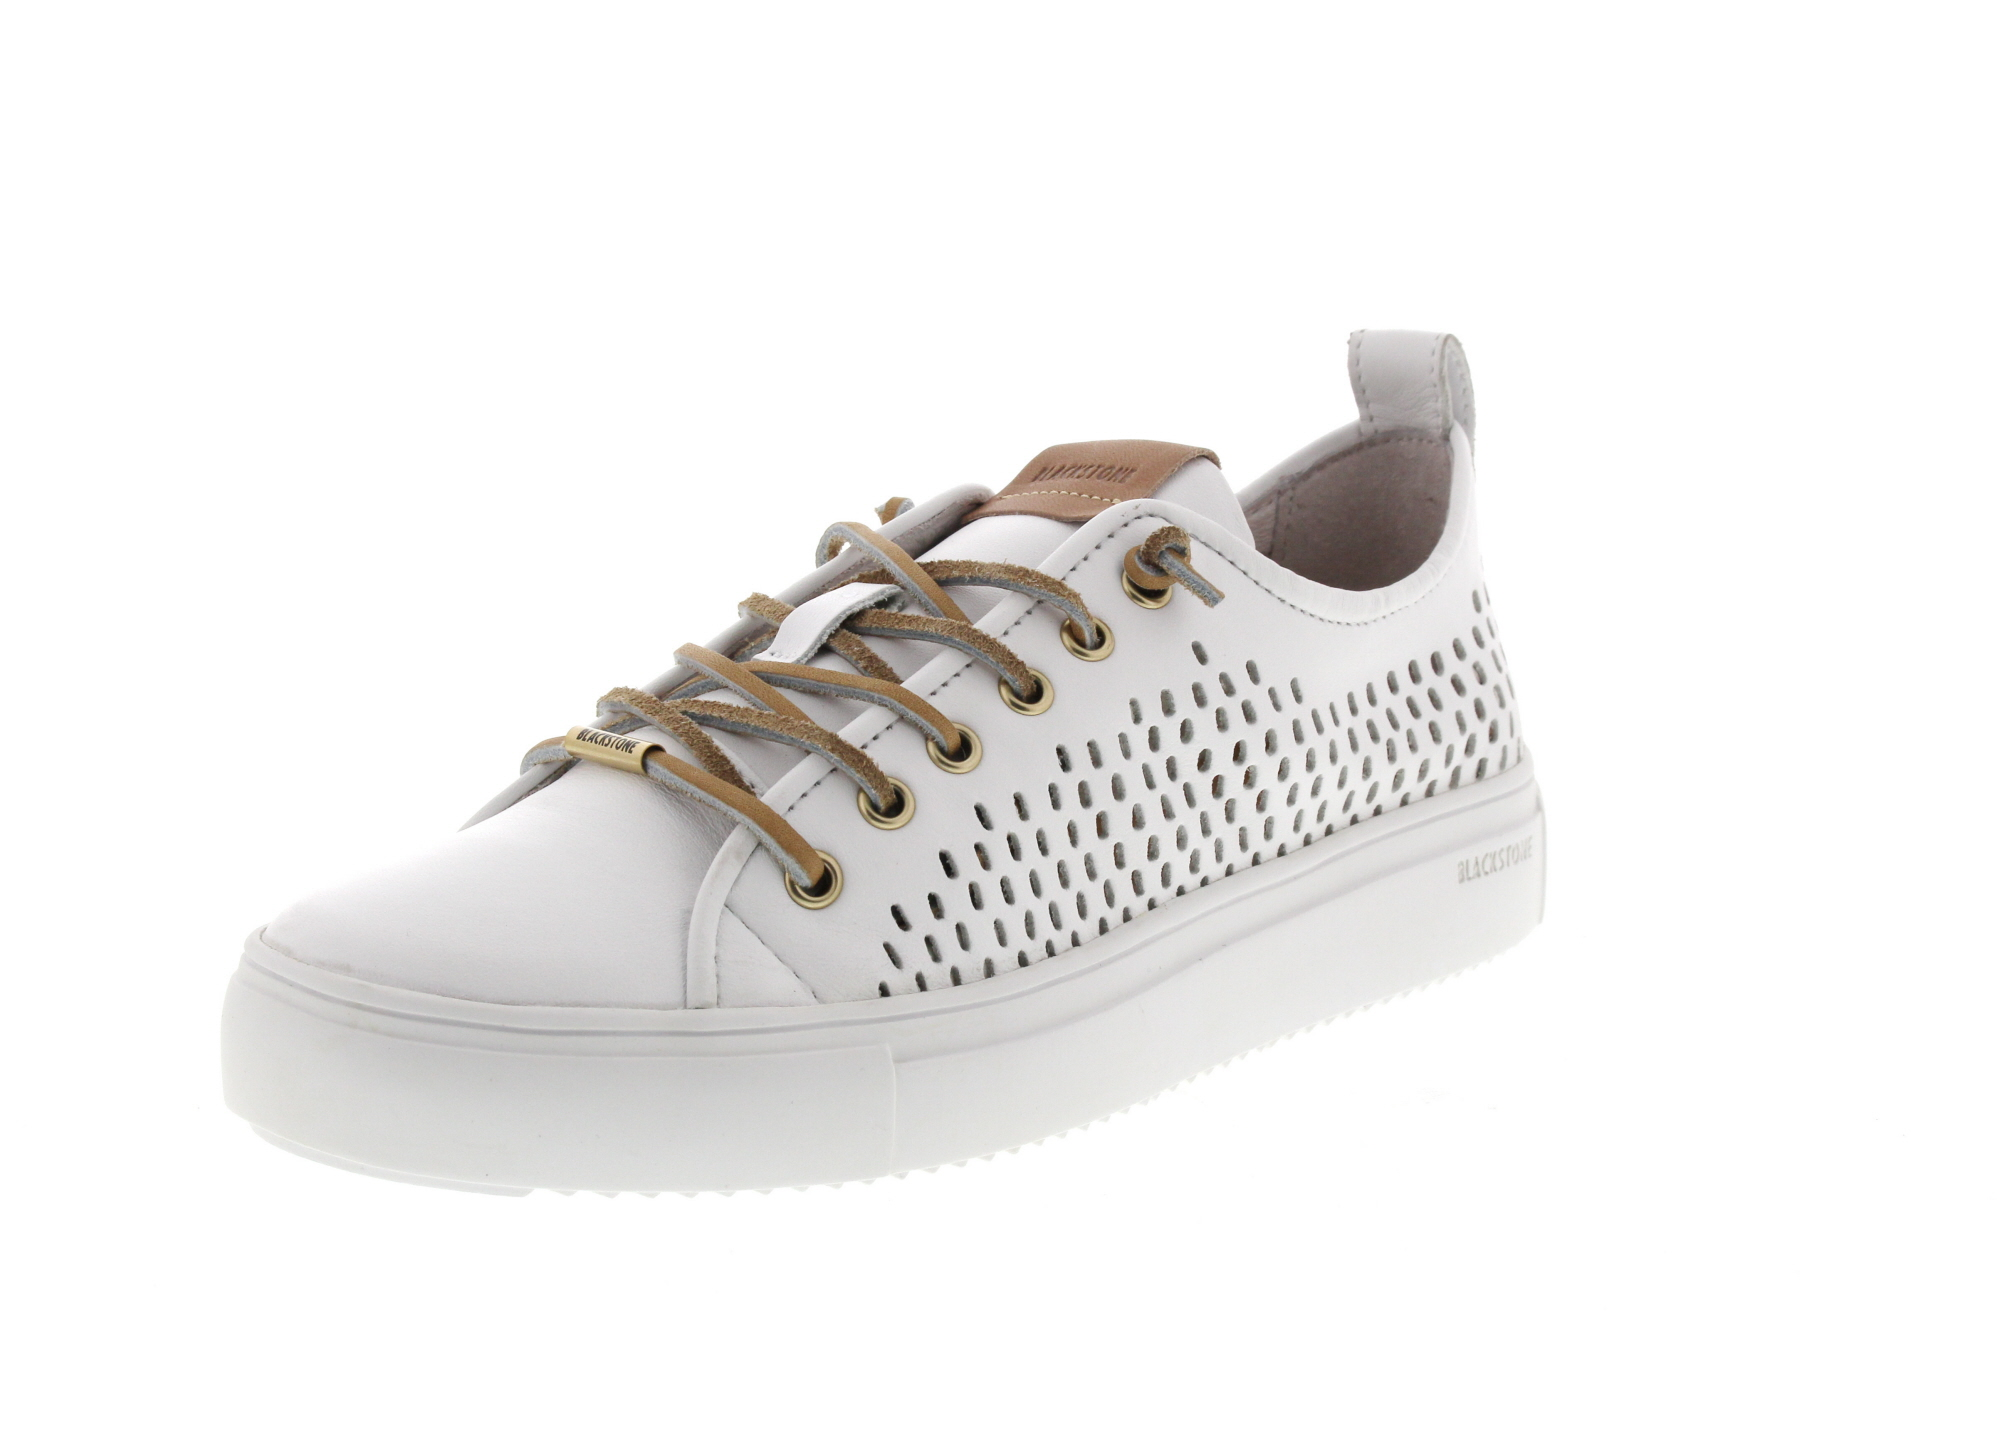 BLACKSTONE Damenschuhe - Low-Cut-Sneakers PL87 - white_0